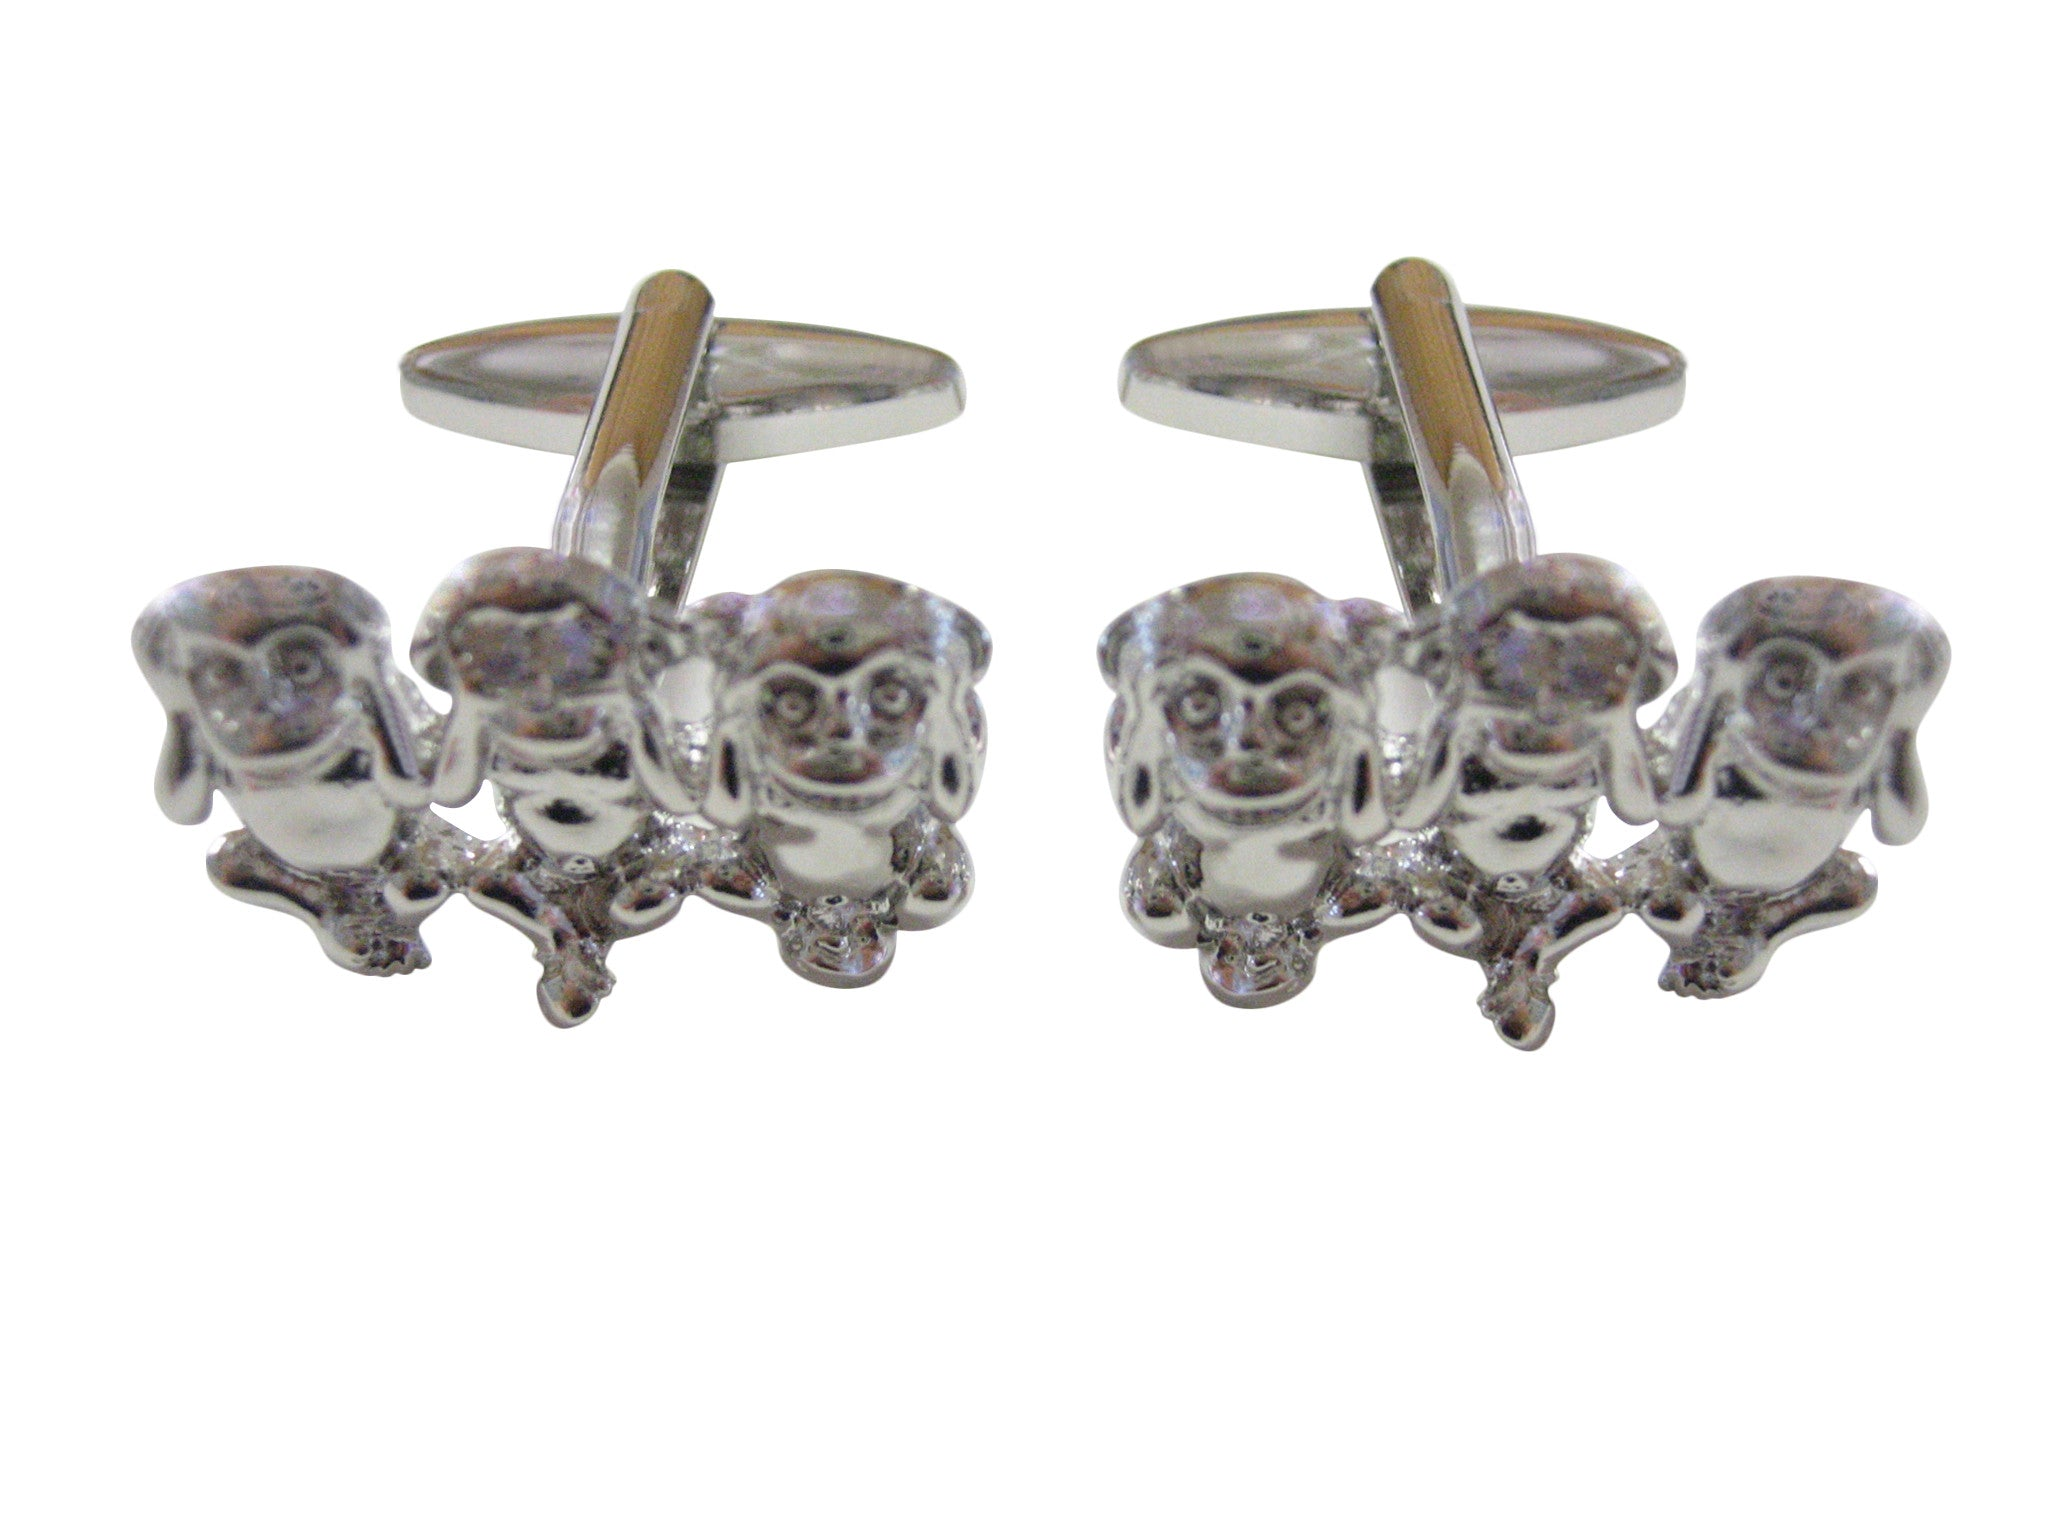 Three Monkey Cufflinks